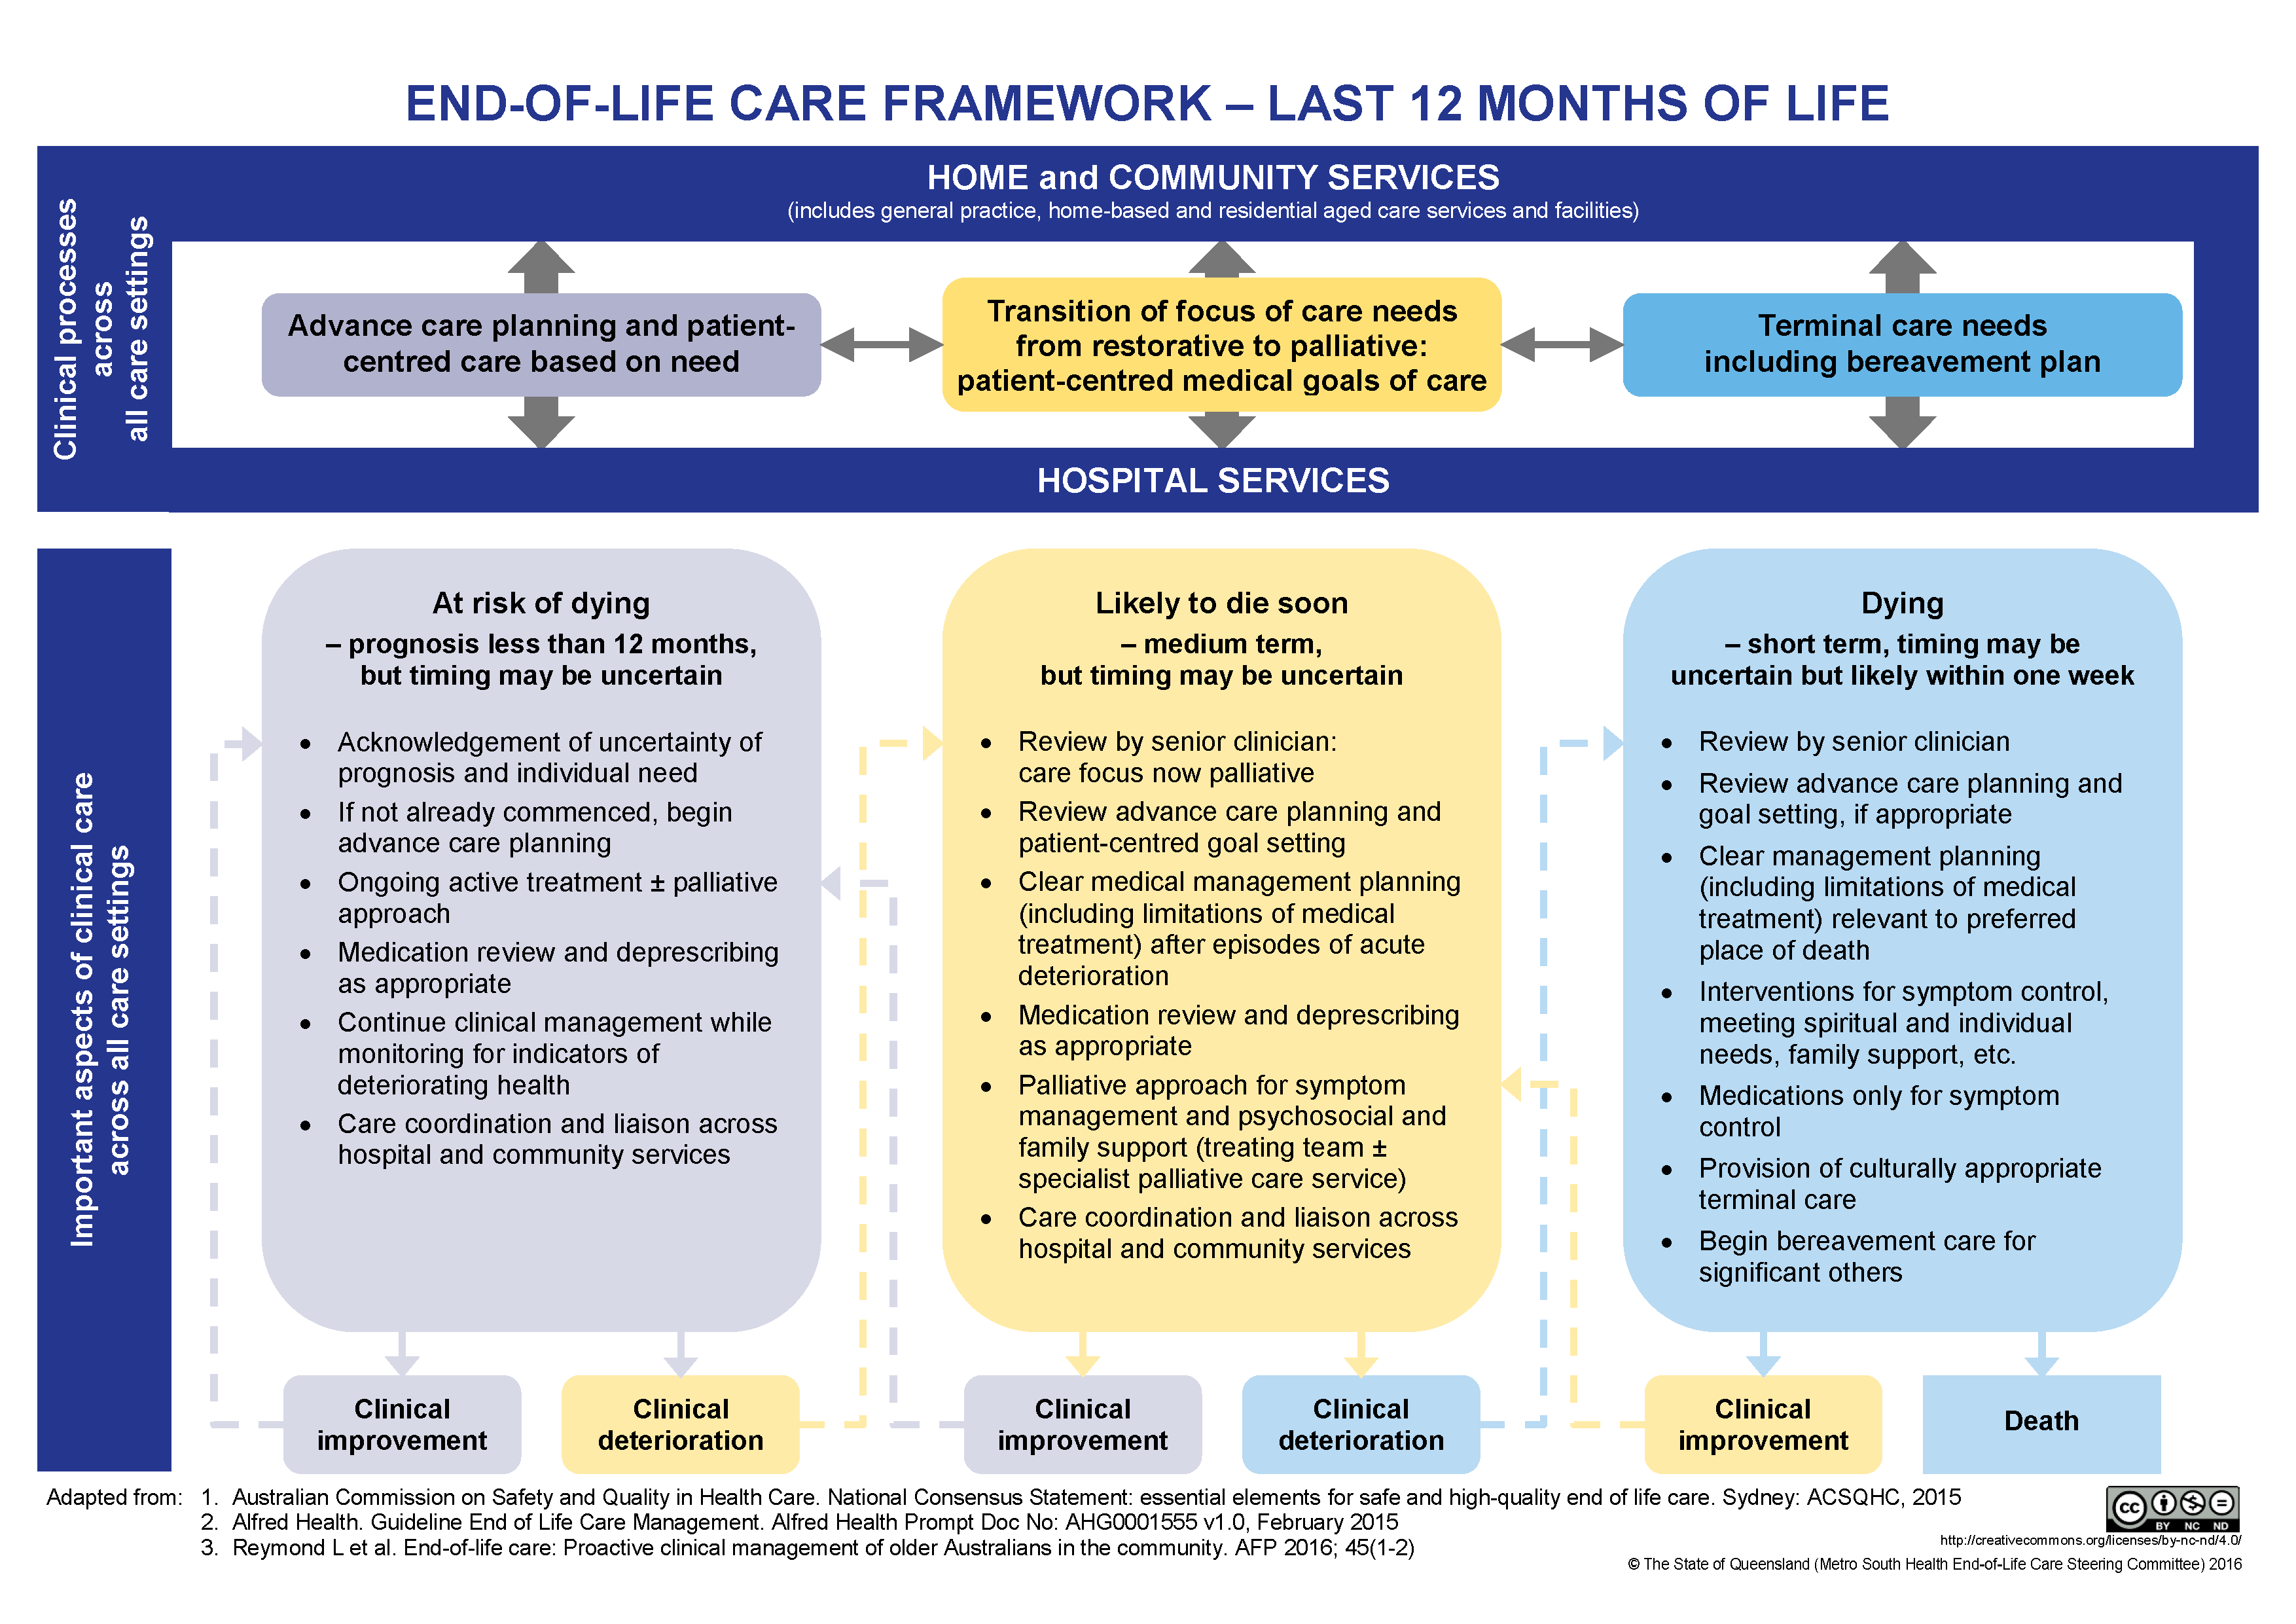 Figure 2. Framework for GPs providing care for community-based patients